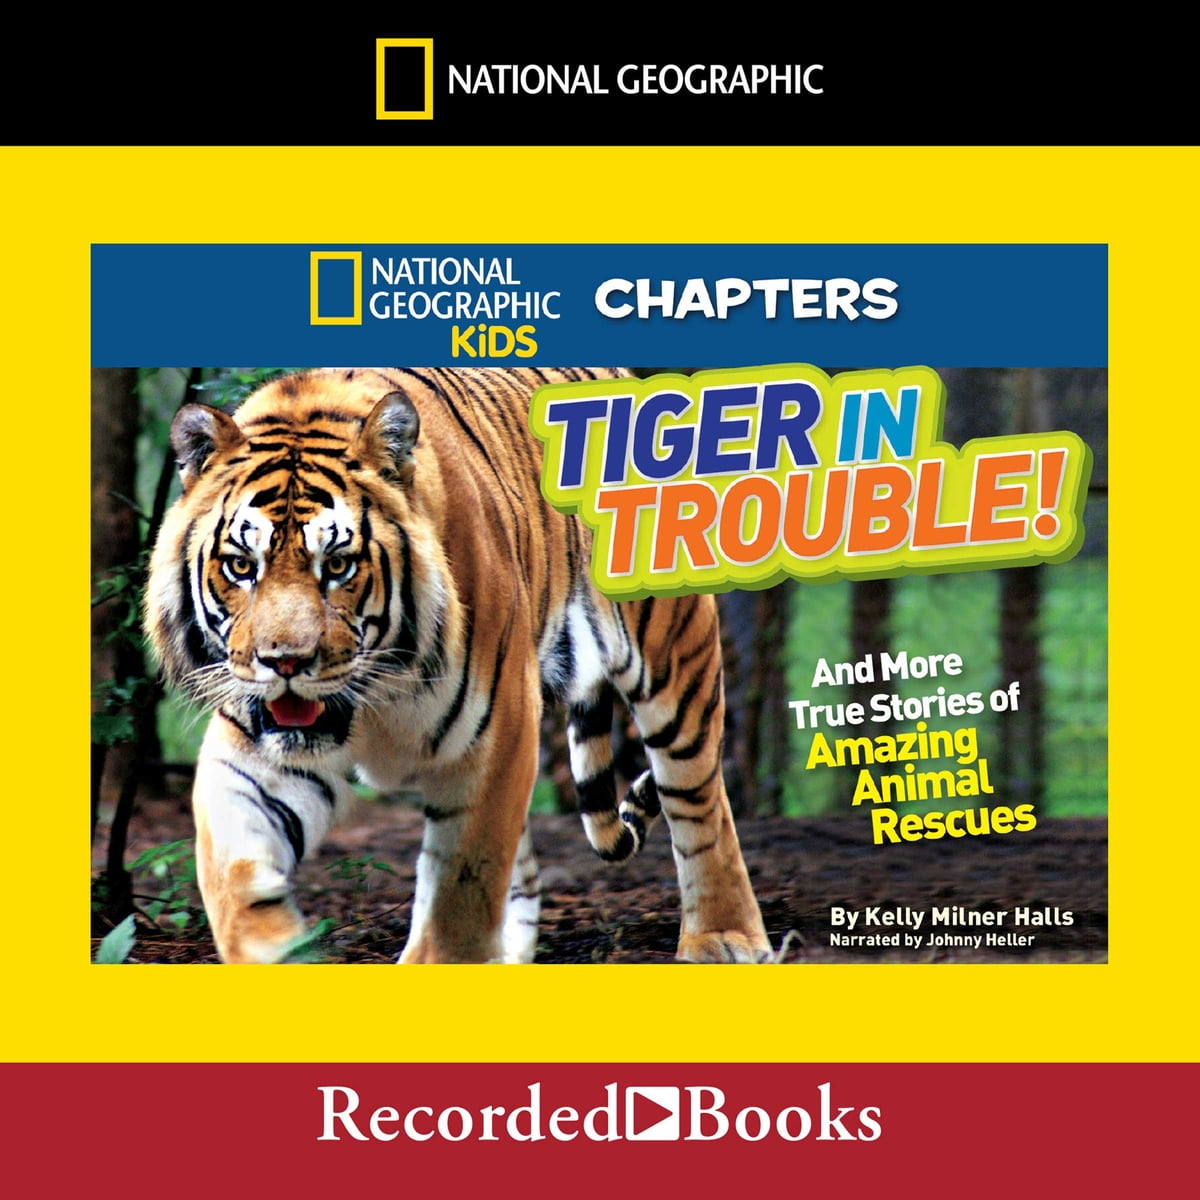 National Geographic Kids Chapters: Tiger in Trouble! audiobook by Kelly  Milner Halls - Rakuten Kobo